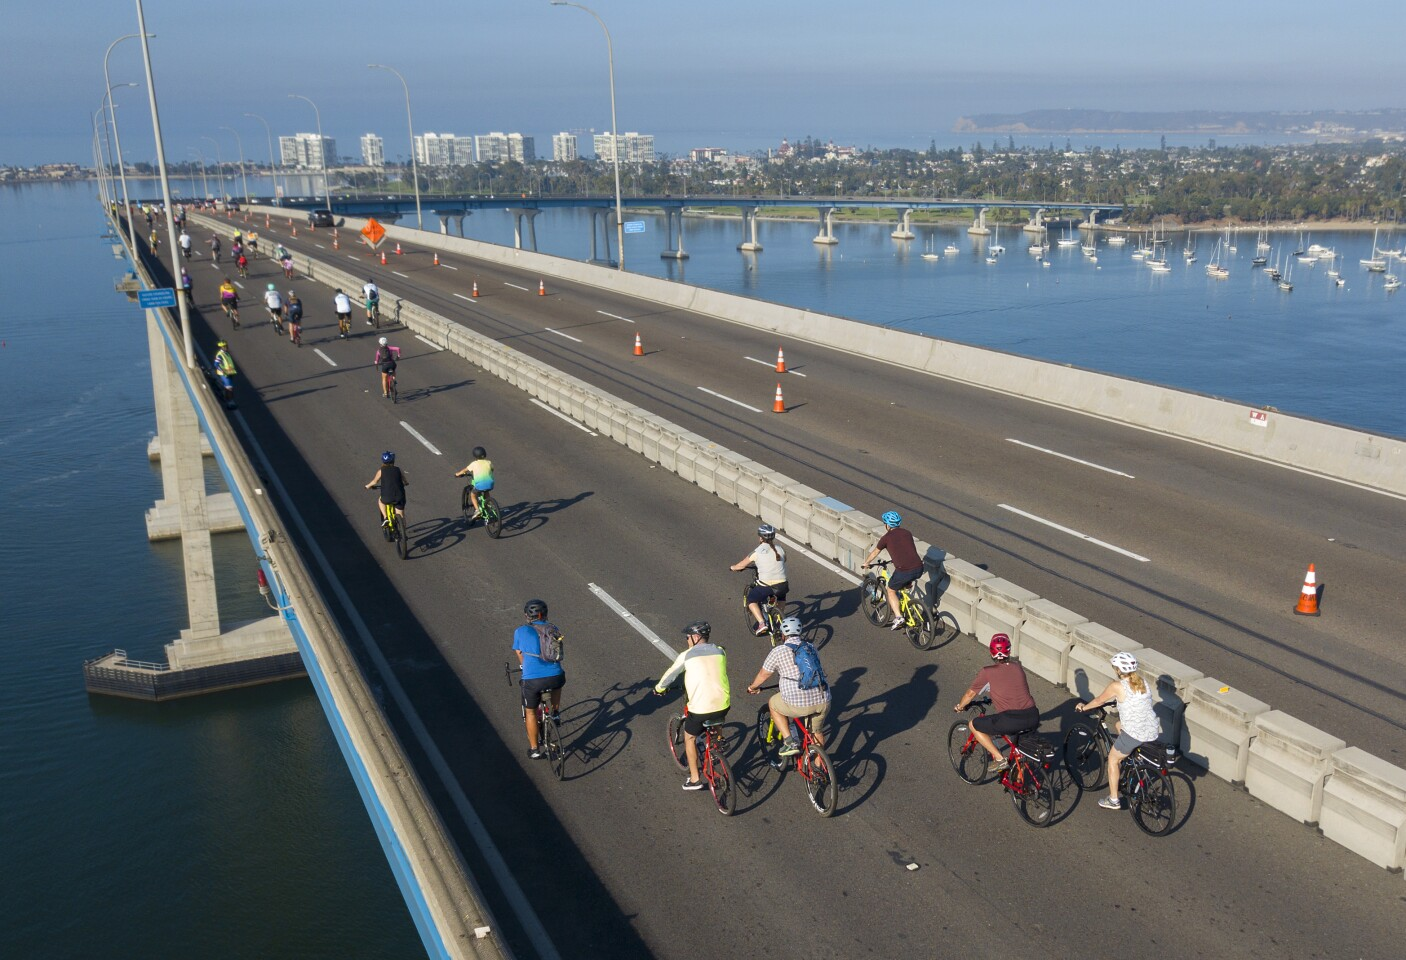 Bicyclists ride over the San Diego-Coronado Bridge during the 12th Annual Bike the Bay, a non-competitive community 25-mile bike ride through the five cities surrounding San Diego Bay via the Bayshore Bikeway on Sunday, August 25, 2019.